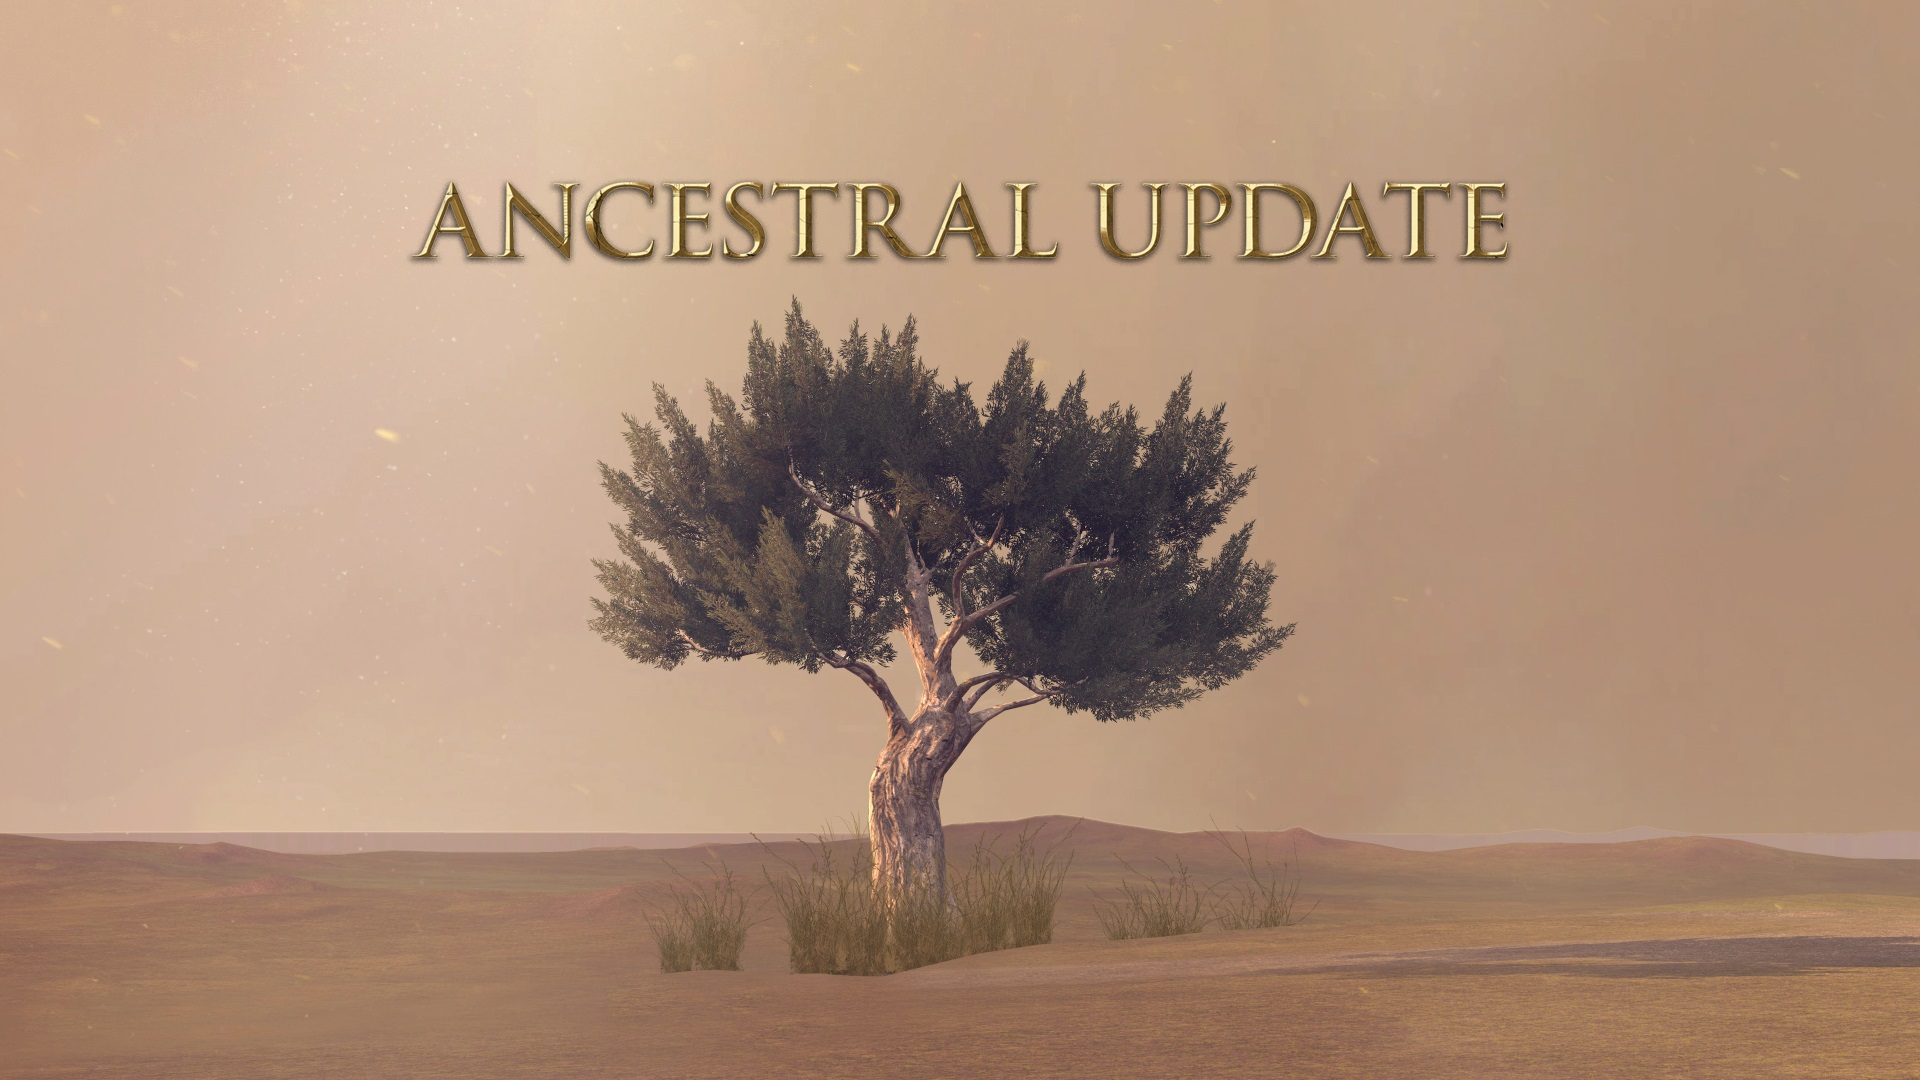 Total War: Rome II Receives Free Ancestral Update Today